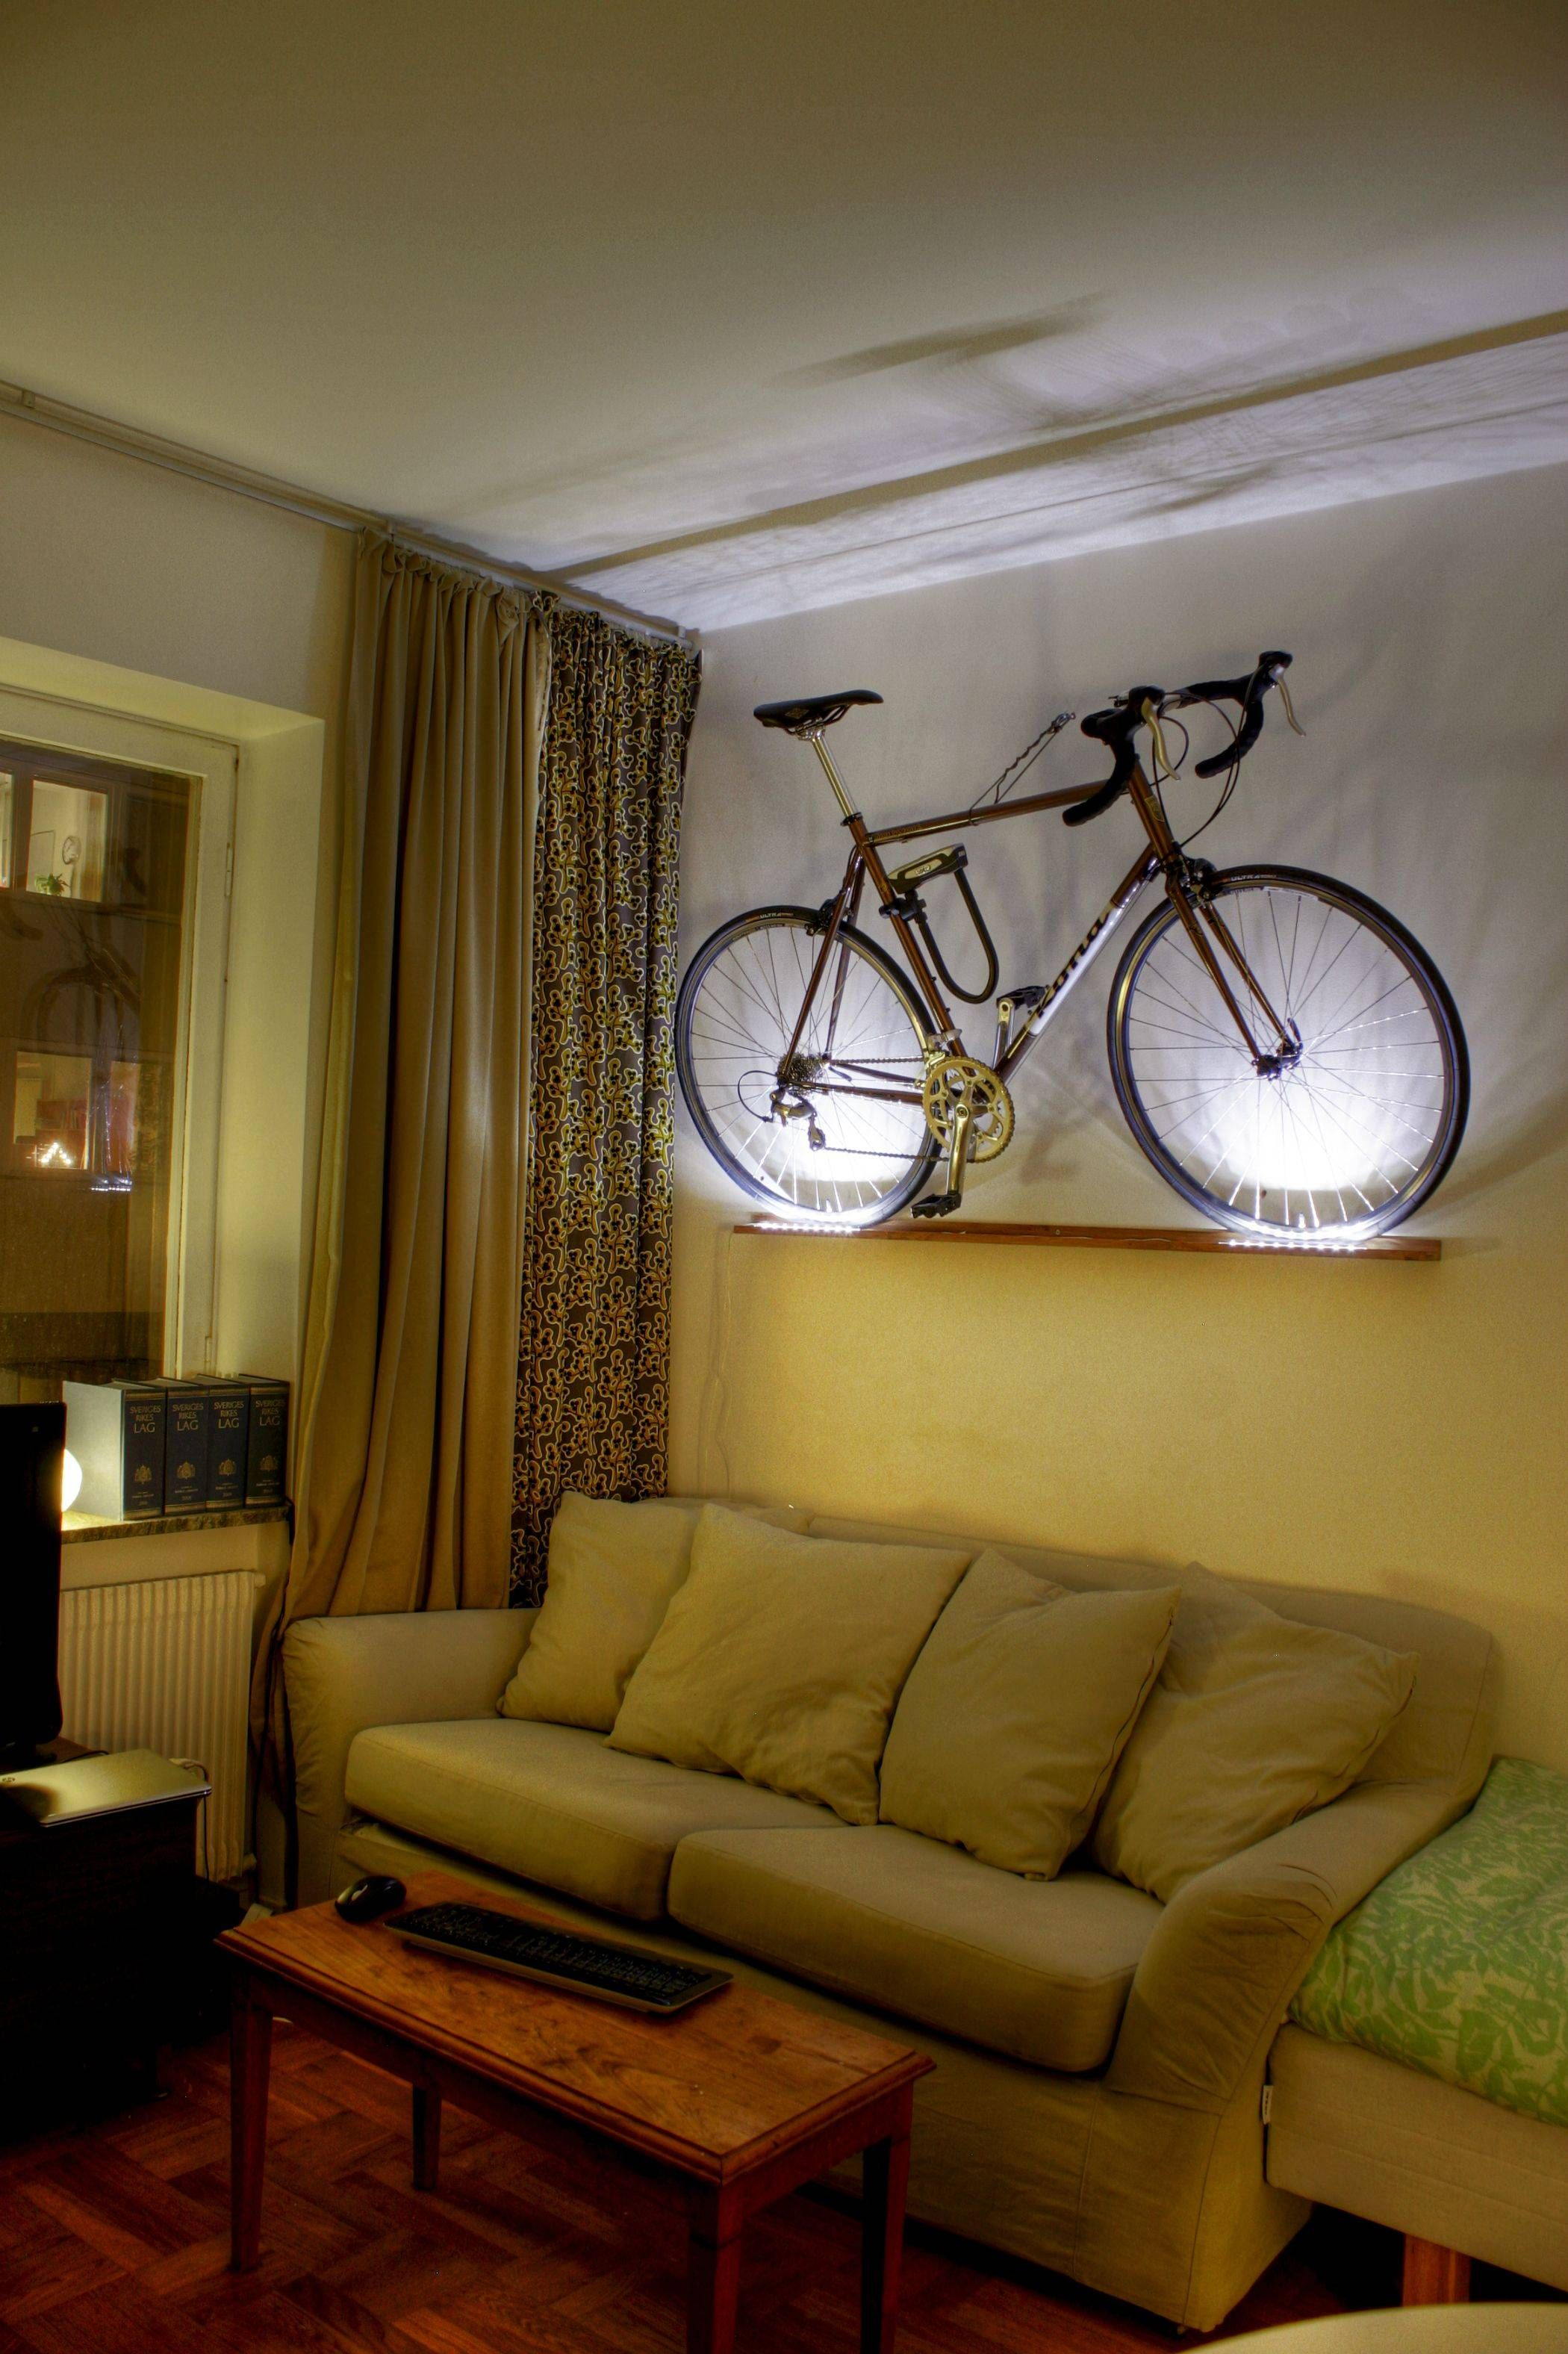 Look jeremy s bicycle rack apartment therapy - Bike Storage For Tiny Apartment